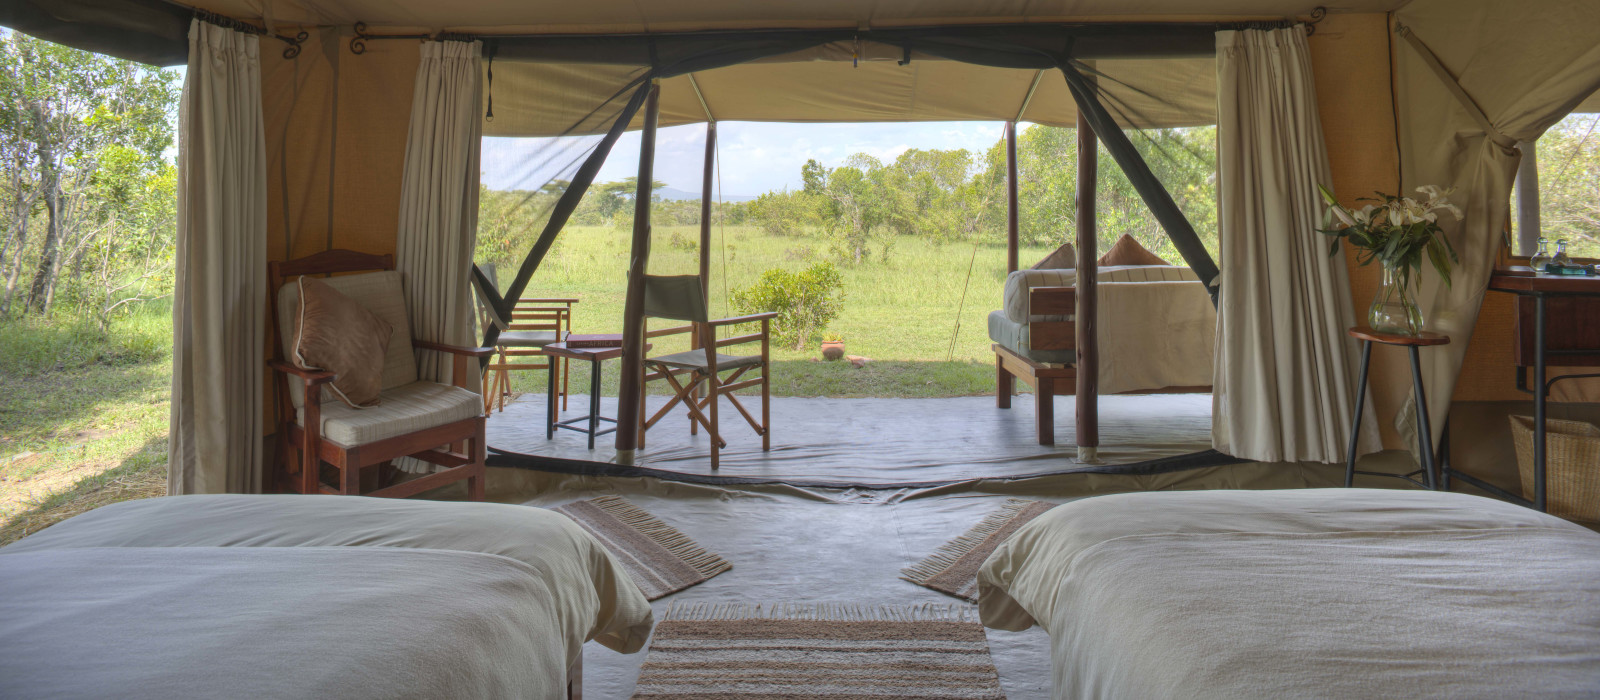 Hotel Encounter Mara Kenia